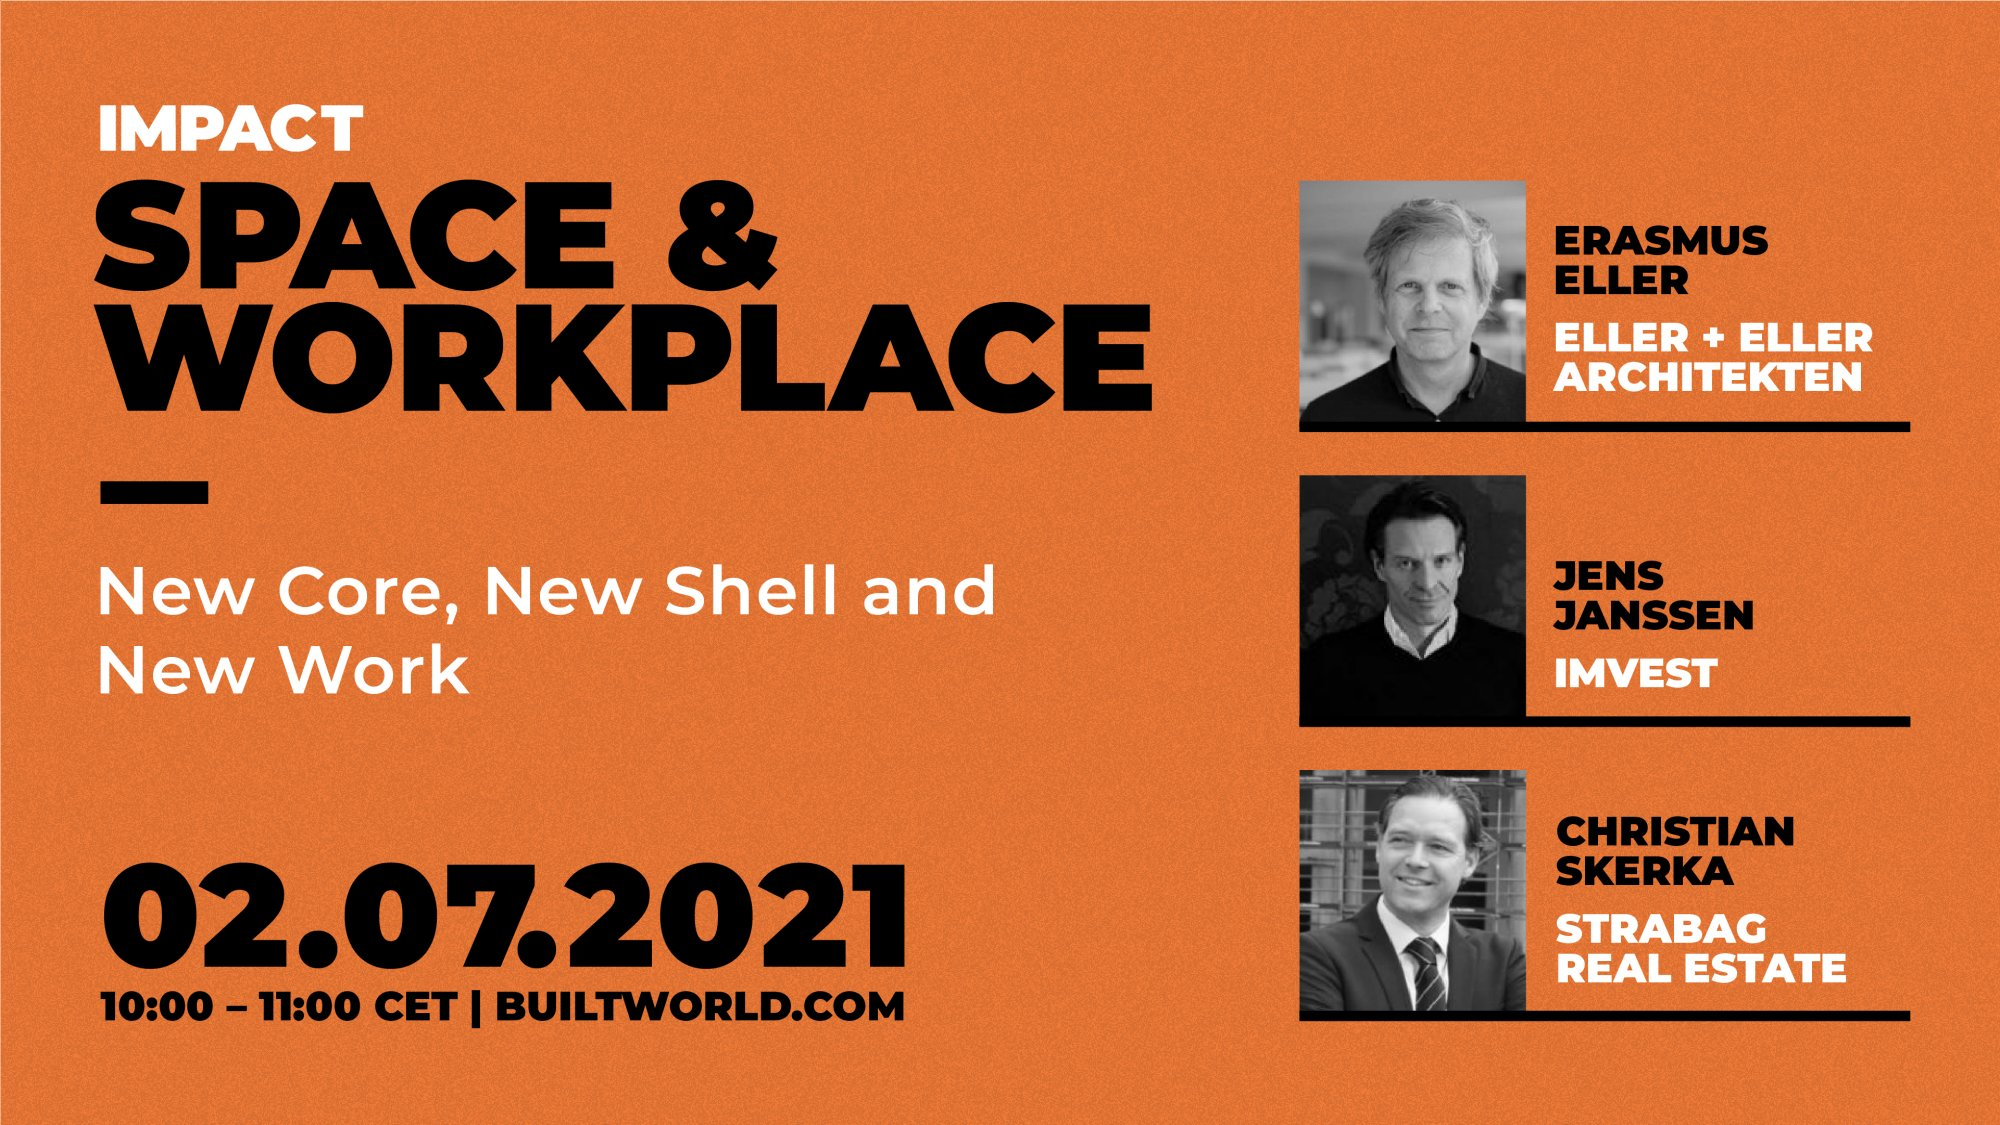 new-core-new-shell-new-work-office-standards-mit-gebaeudetiefen